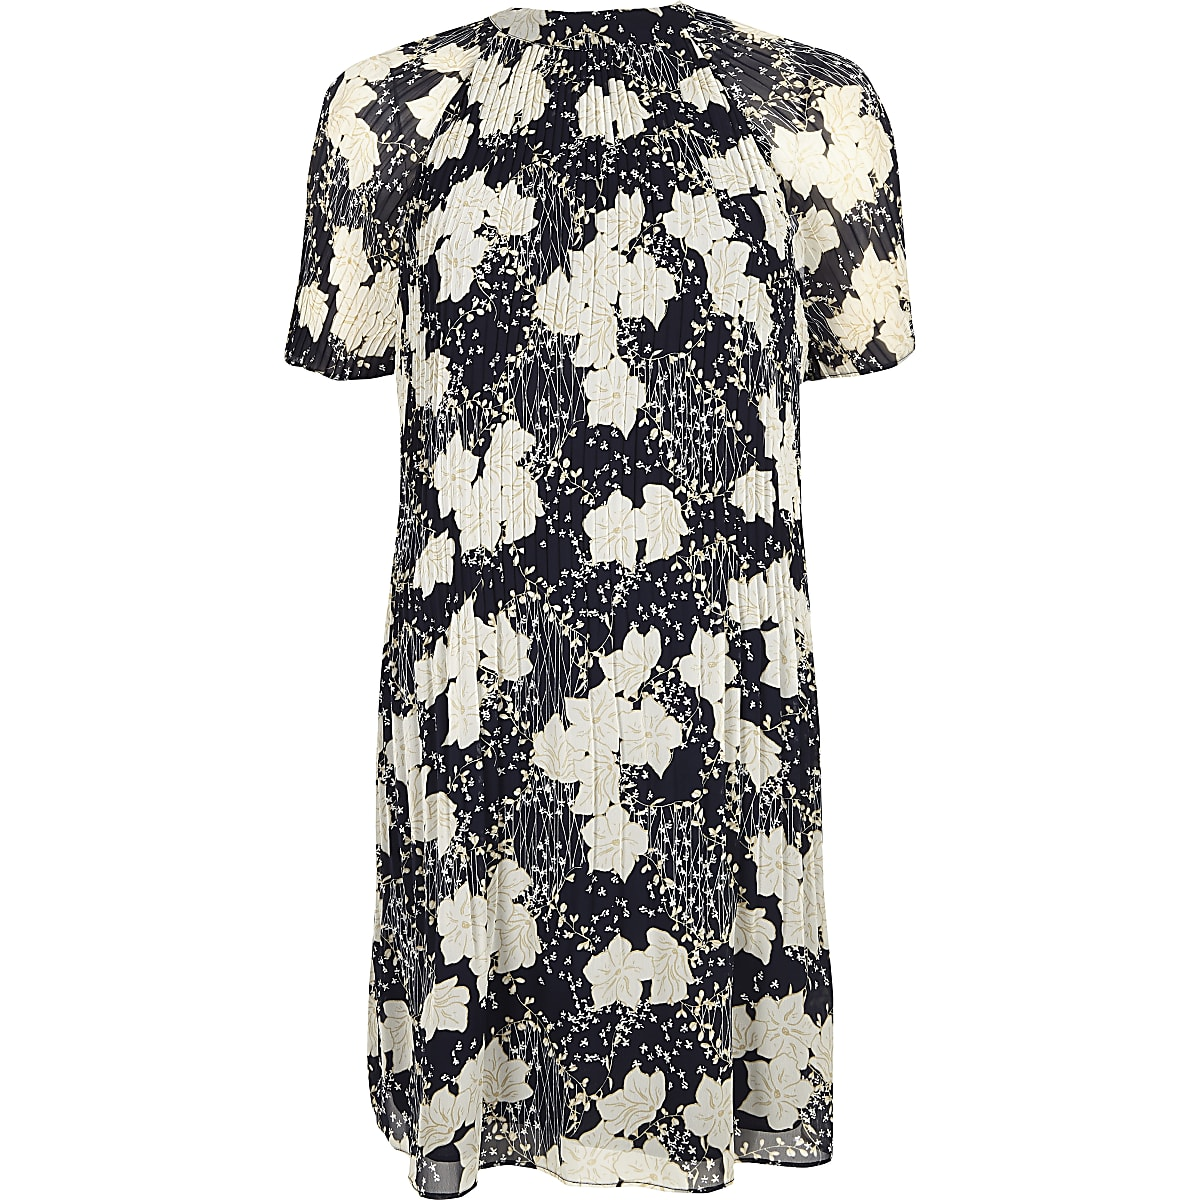 a0dbfc4fb0c9 Navy floral print pleated swing dress - Swing Dresses - Dresses - women